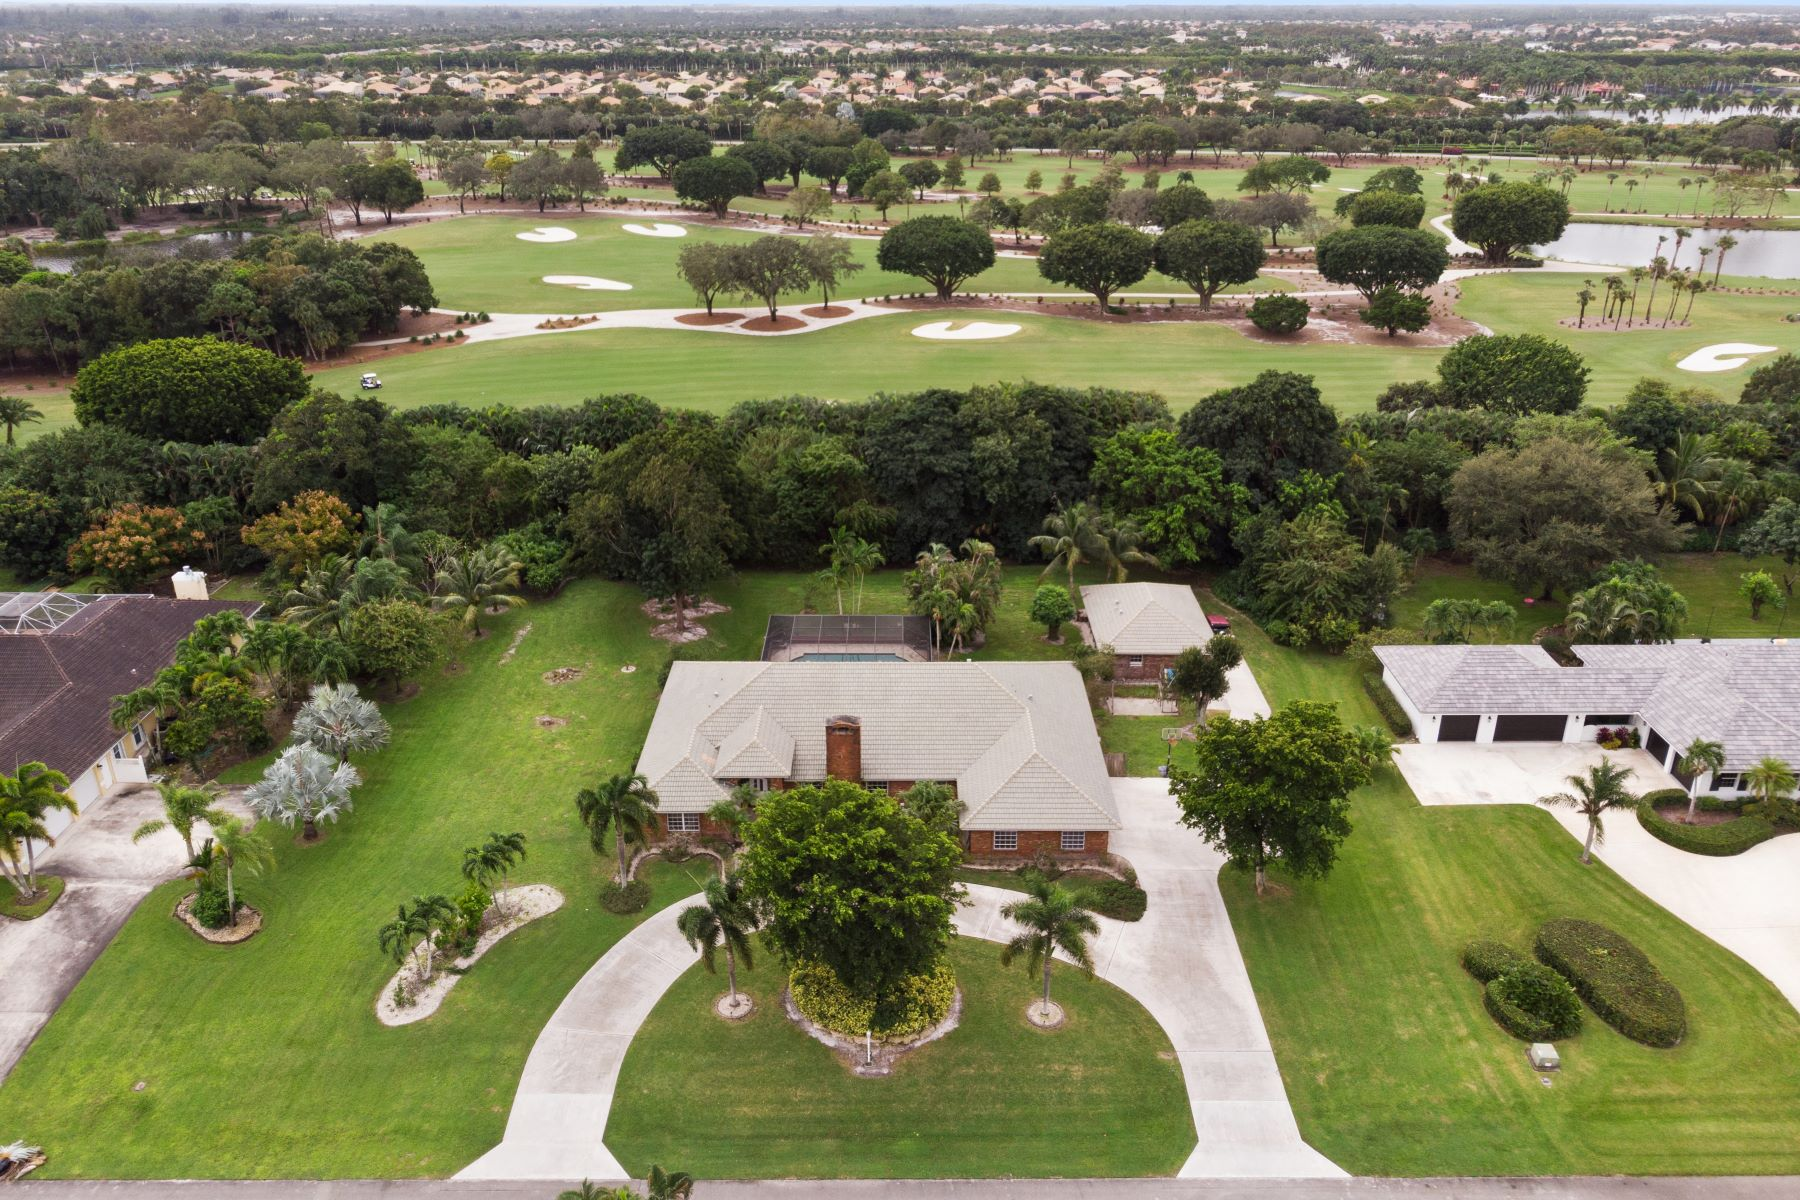 Single Family Homes for Active at 8657 Estate Drive, West Palm Beach, FL 33411 8657 Estate Drive West Palm Beach, Florida 33411 United States